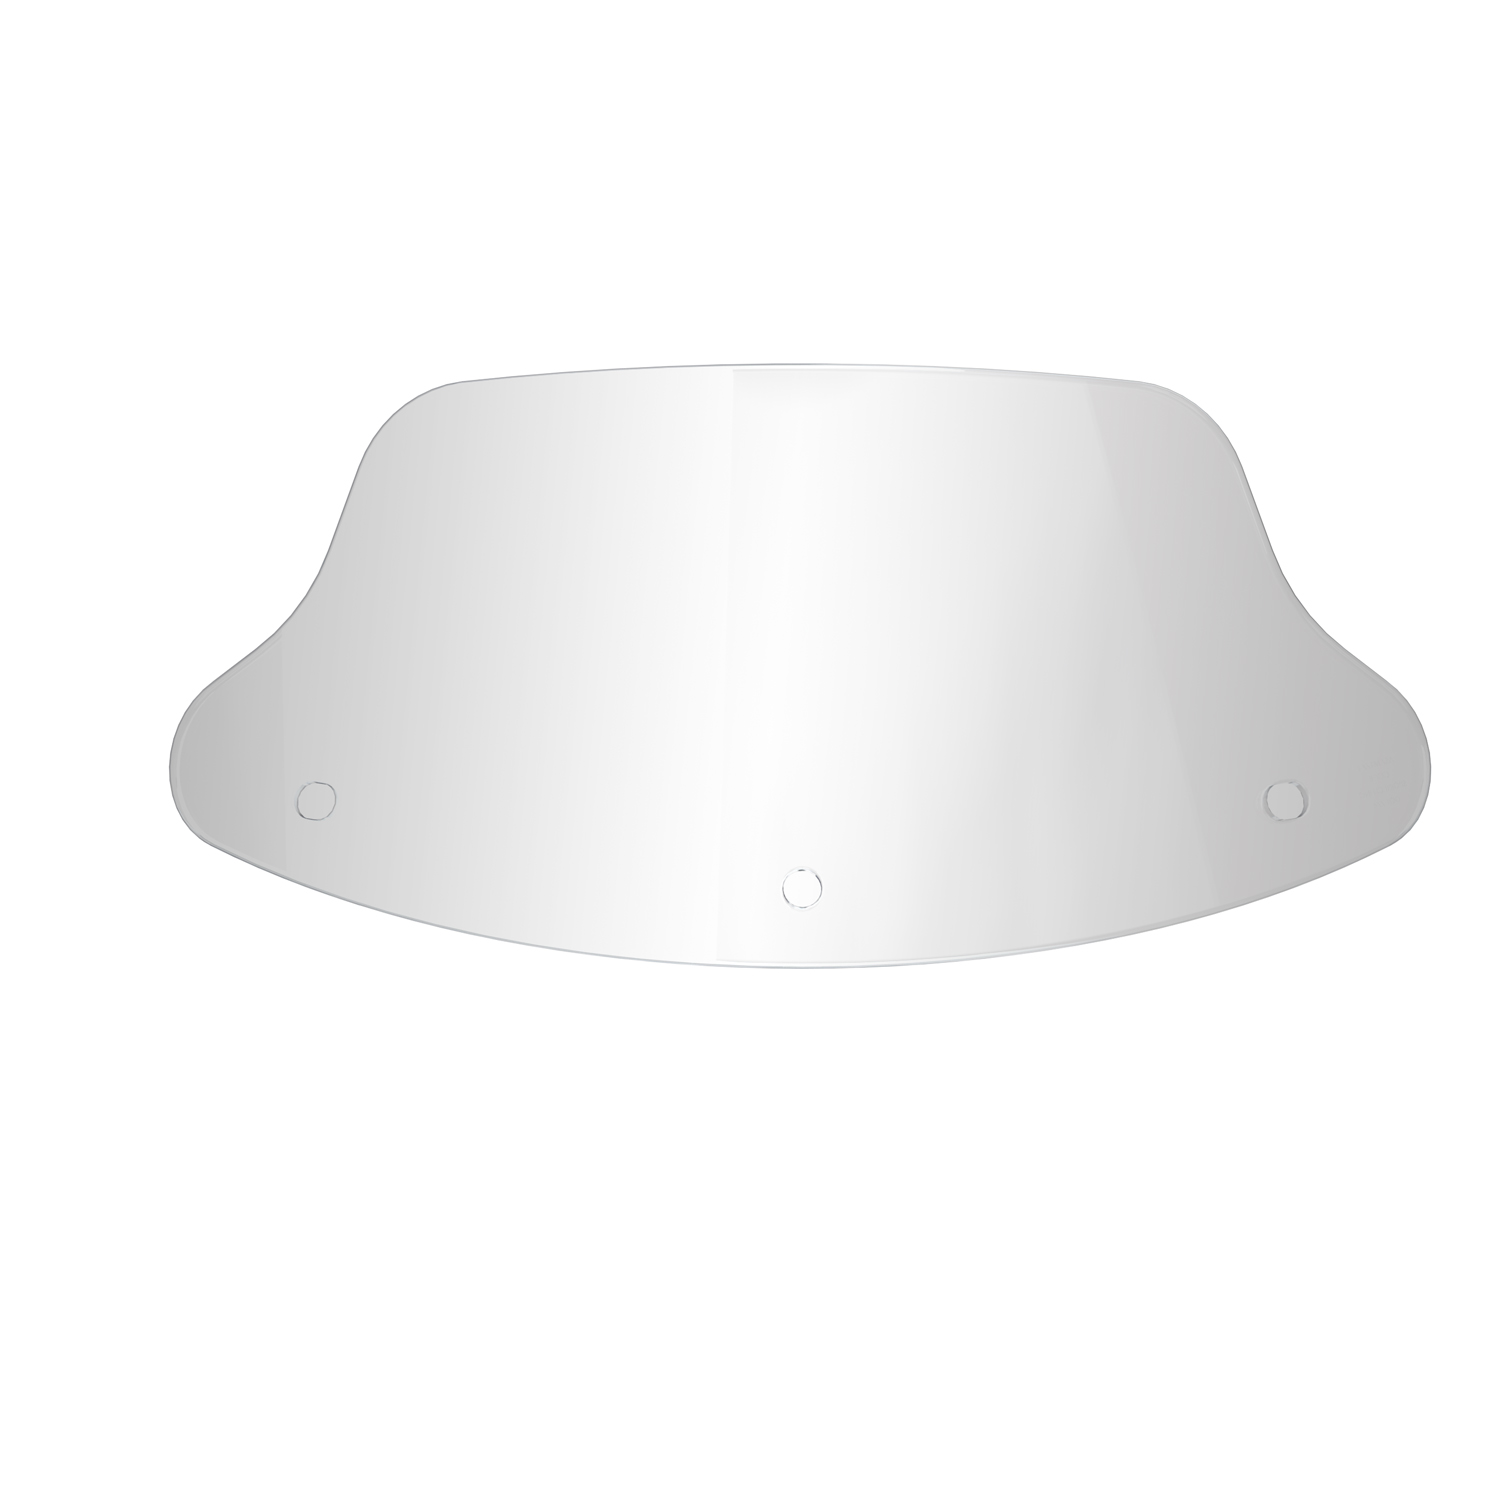 5 in. Windshield for Quick Release Fairing - Tinted